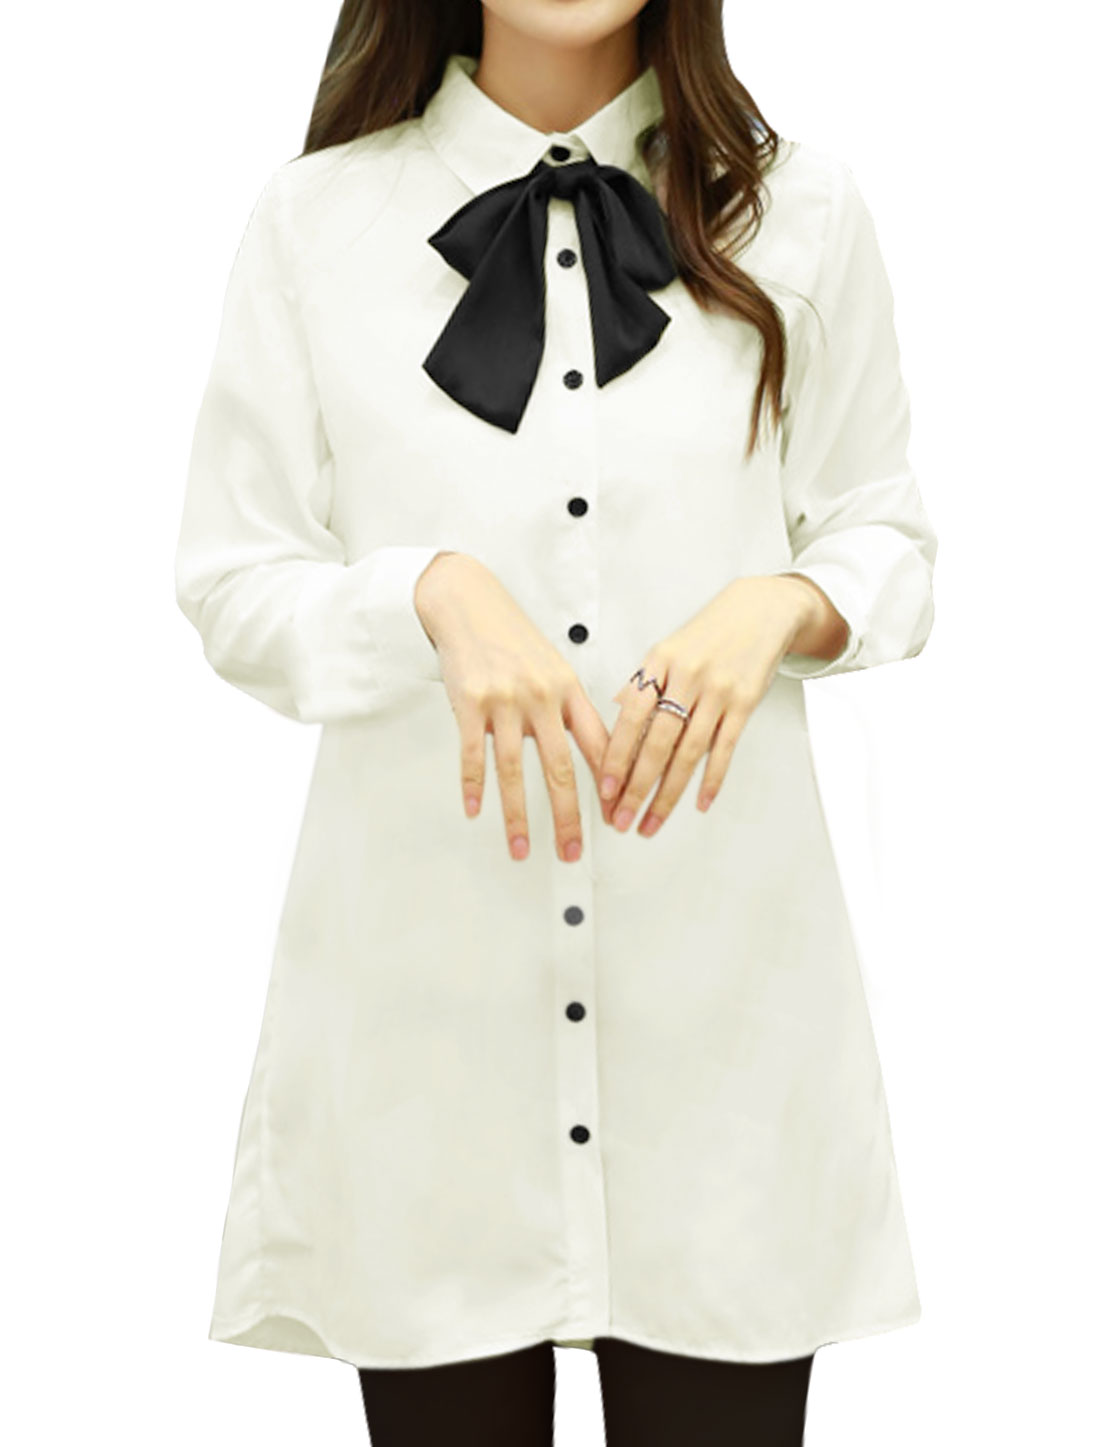 Women Point Collar Semi Sheer High Low Tunic Shirt w Bow Tie White L